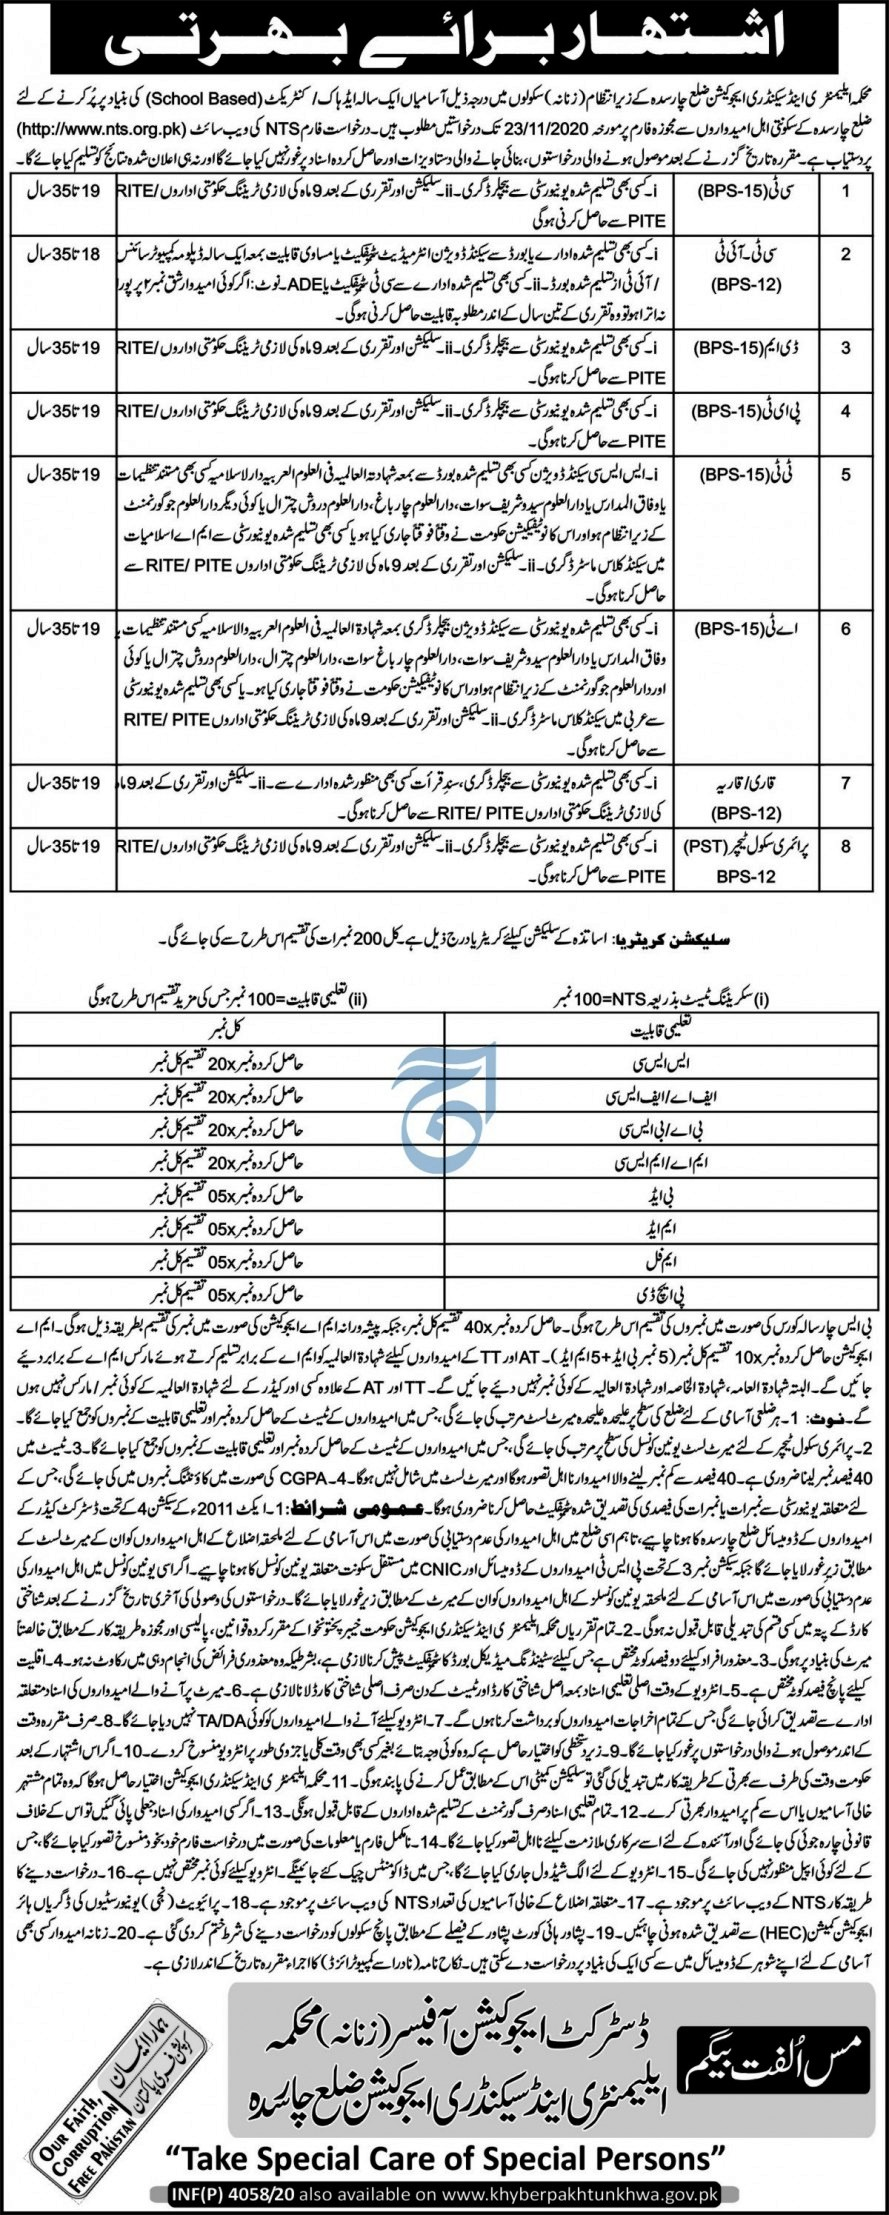 Elementary Secondary Education Charsadda Schools Jobs NTS Roll No Slip